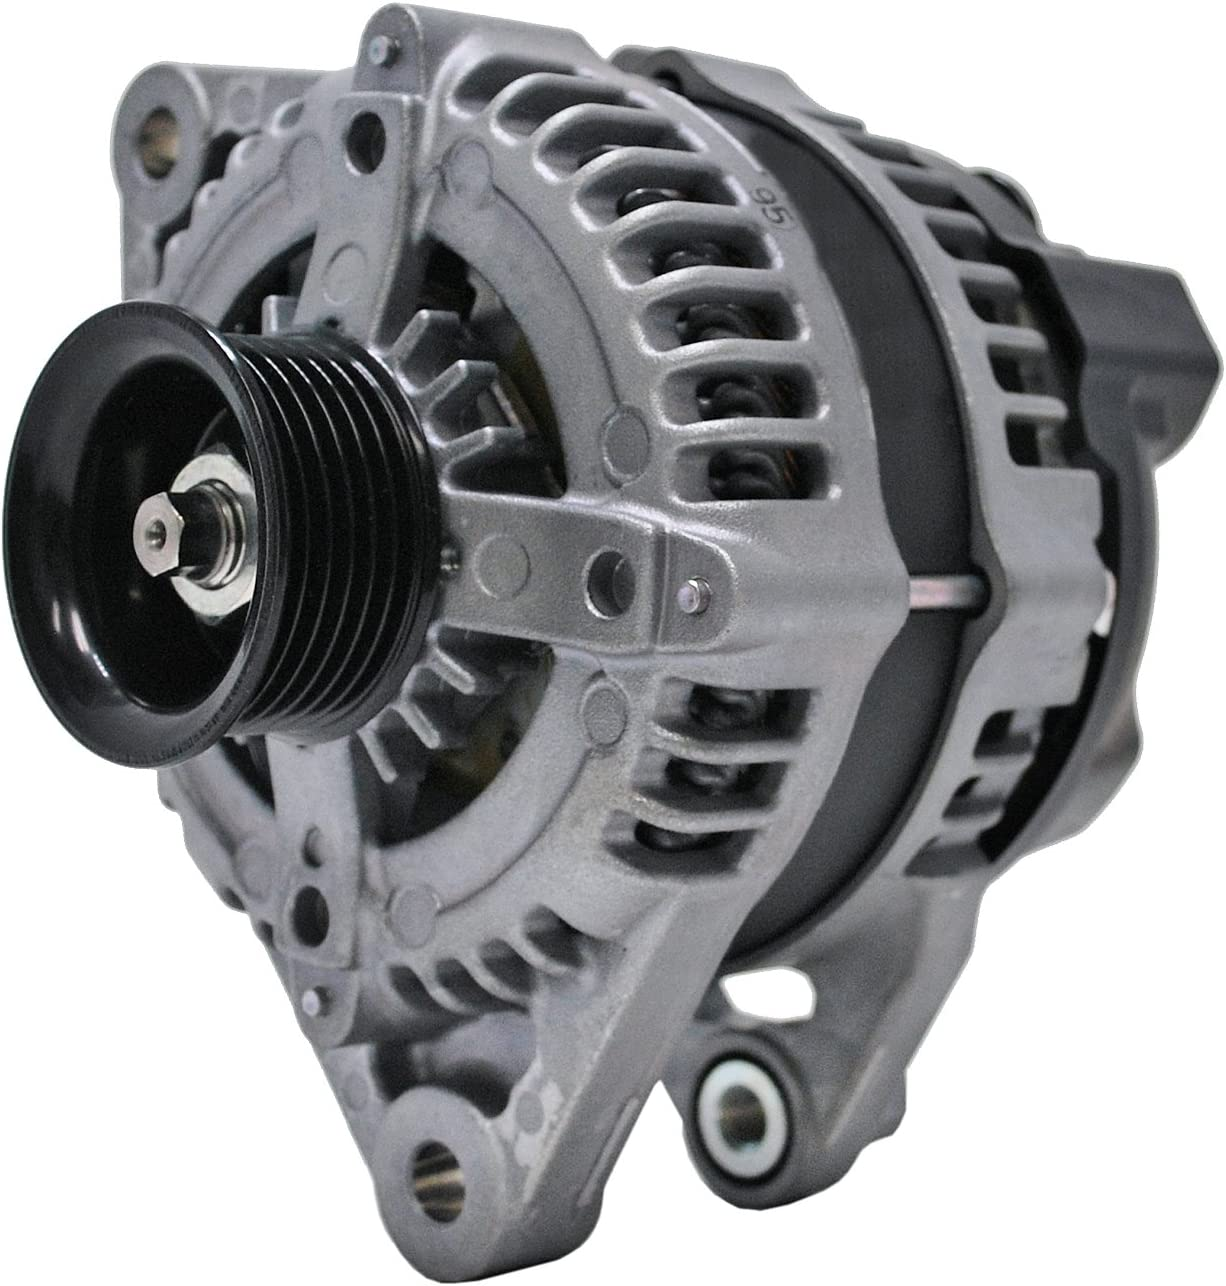 ACDelco 334-2865 Professional Alternator, Remanufactured